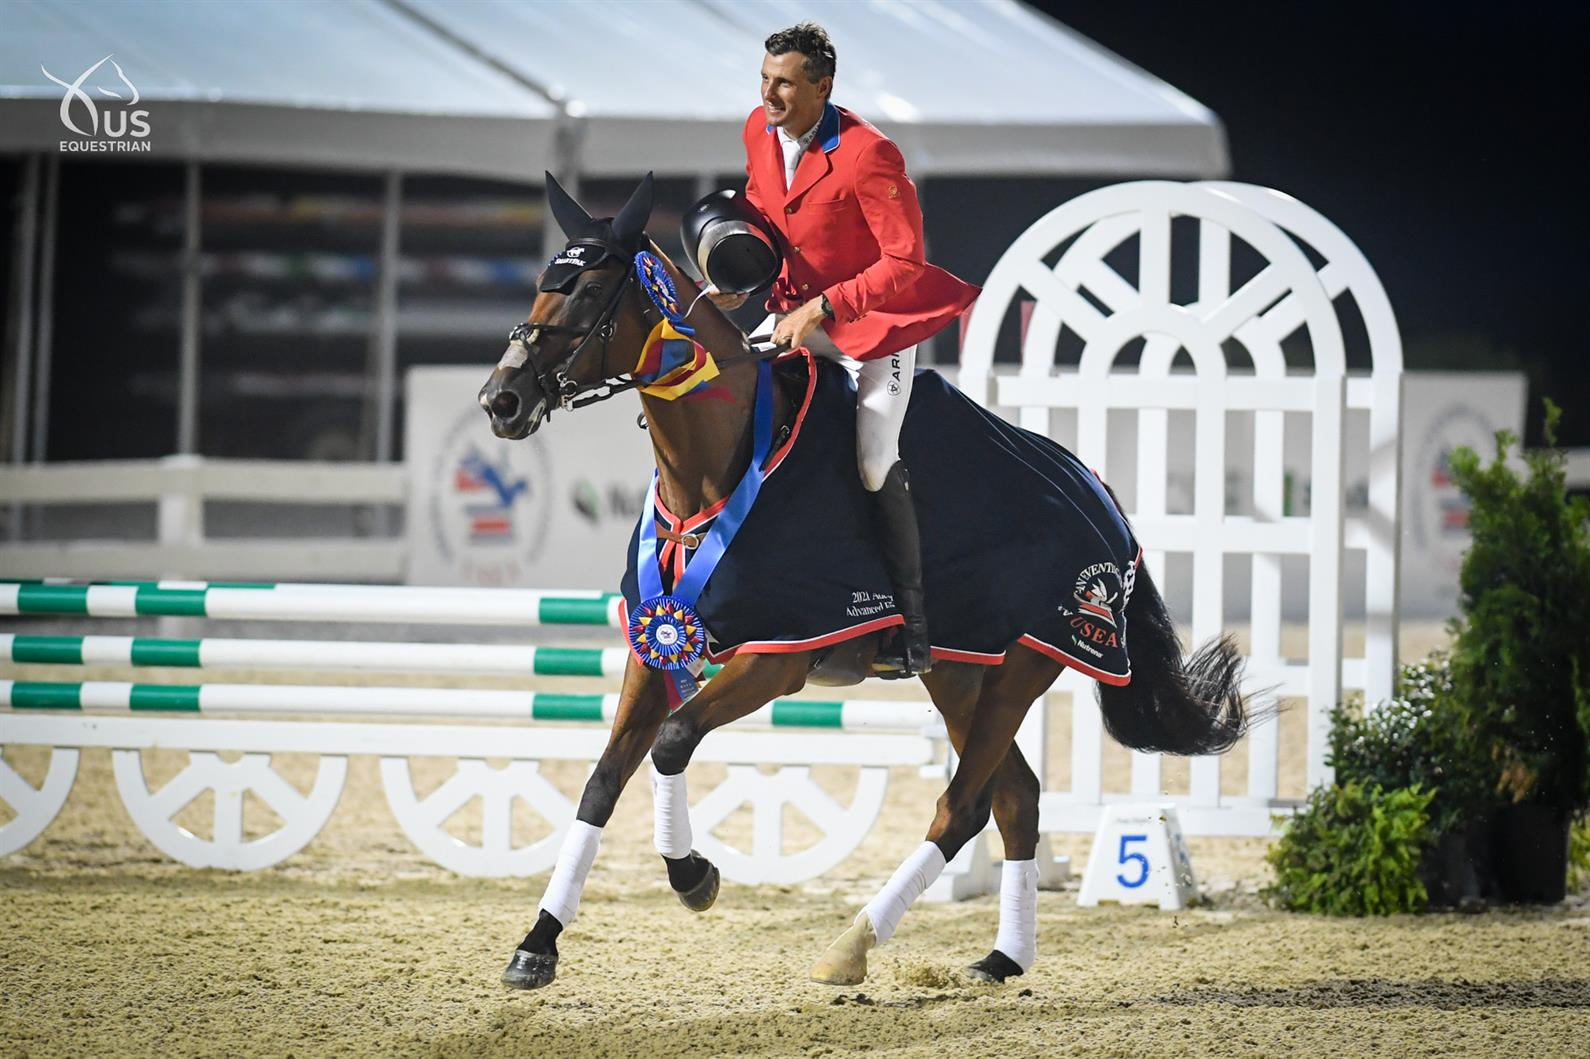 Boyd Martin and On Cue taking a victory lap at the 2021 USEF Advanced Horse Trials National Championship